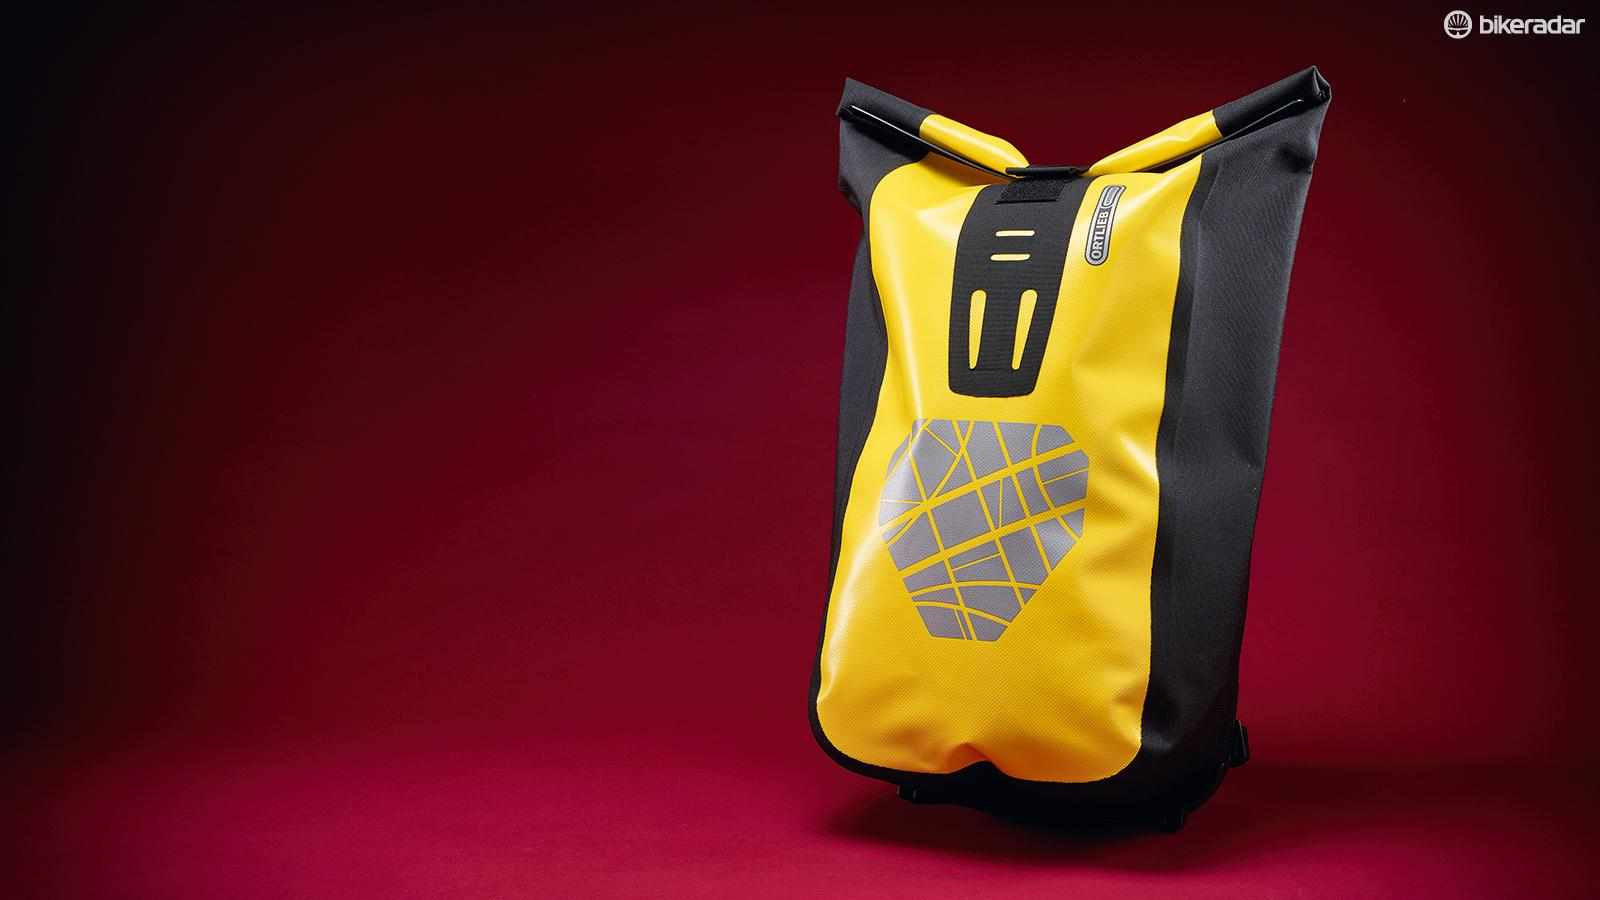 The bag has great waterproofing from the rolltop closure, which is secured by super-strong Velcro